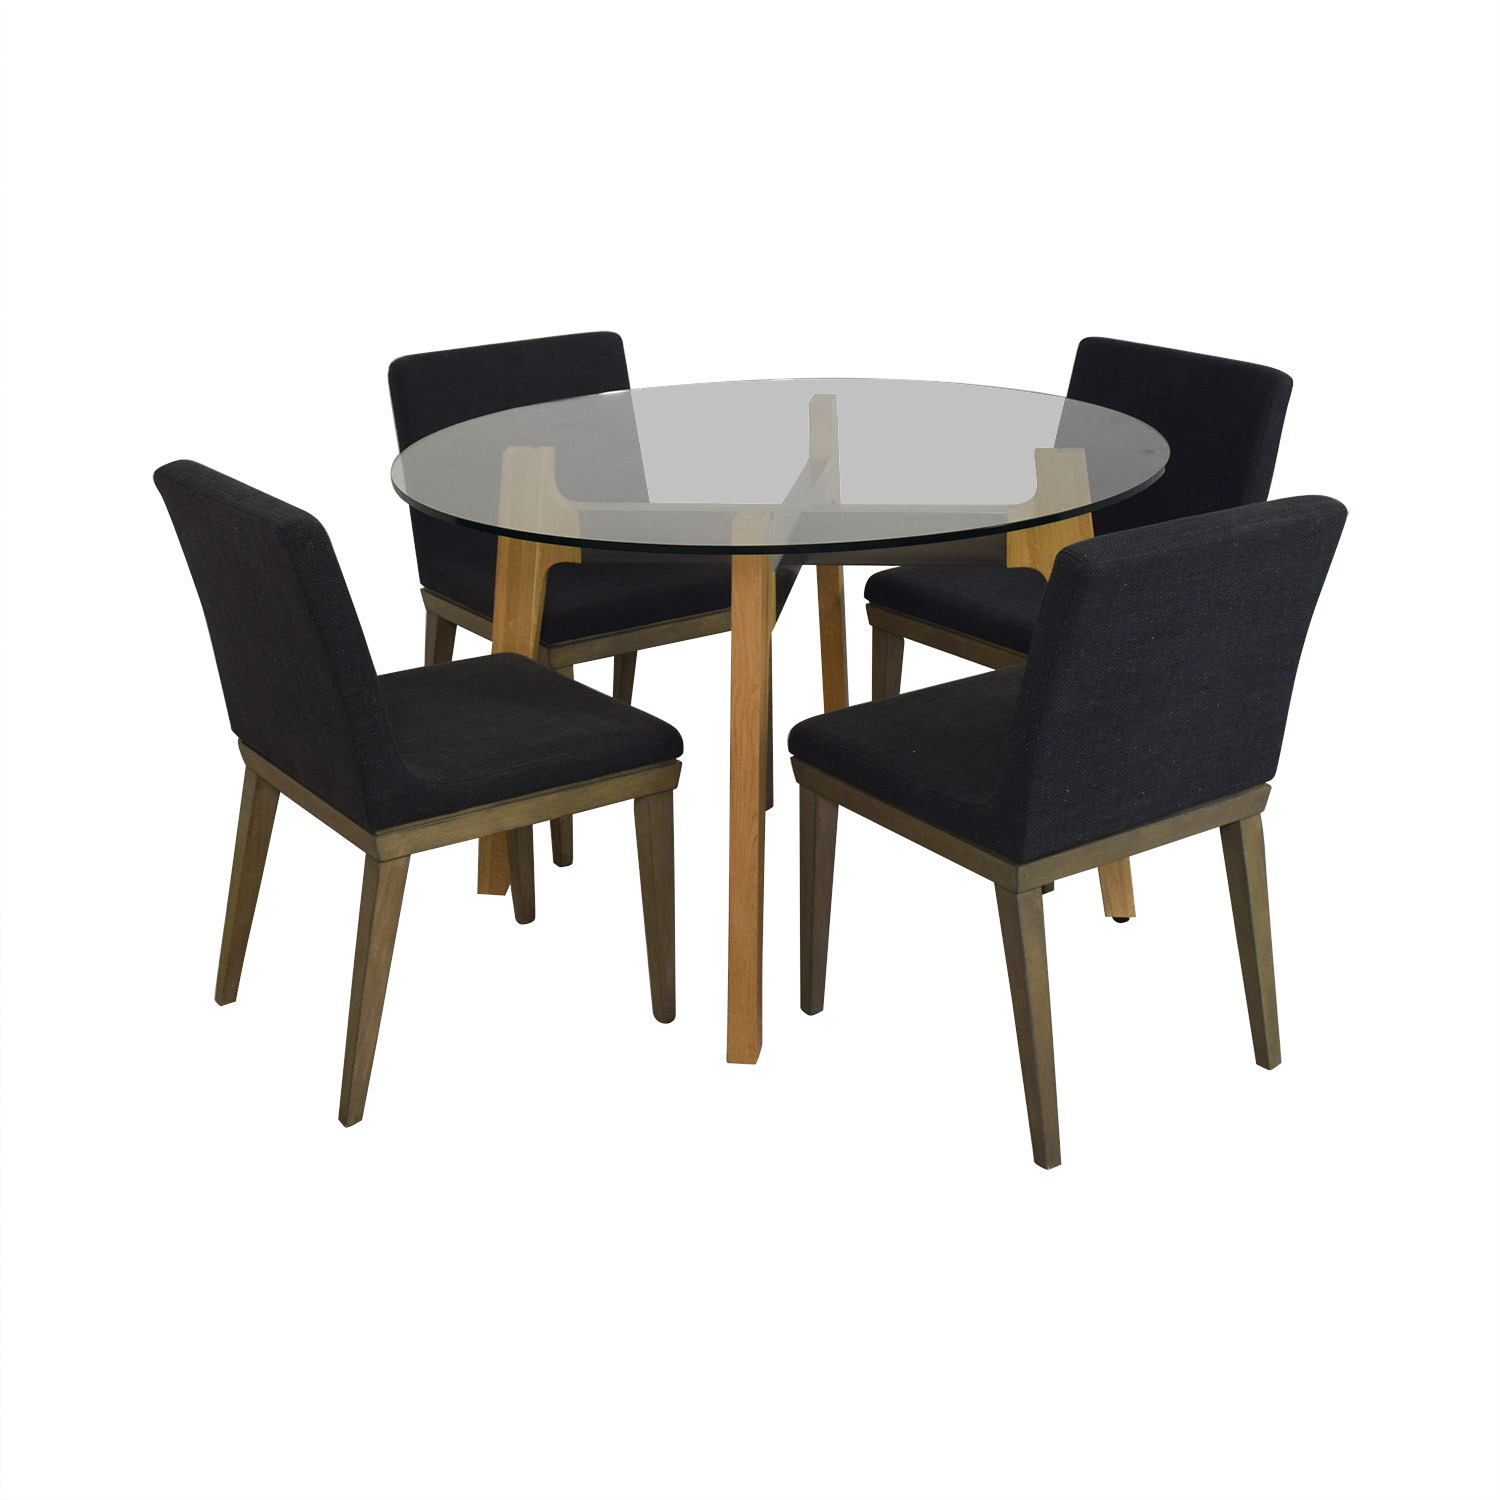 CB2 CB2 Glass Dining Room Table with Four Chairs Presidential Blue